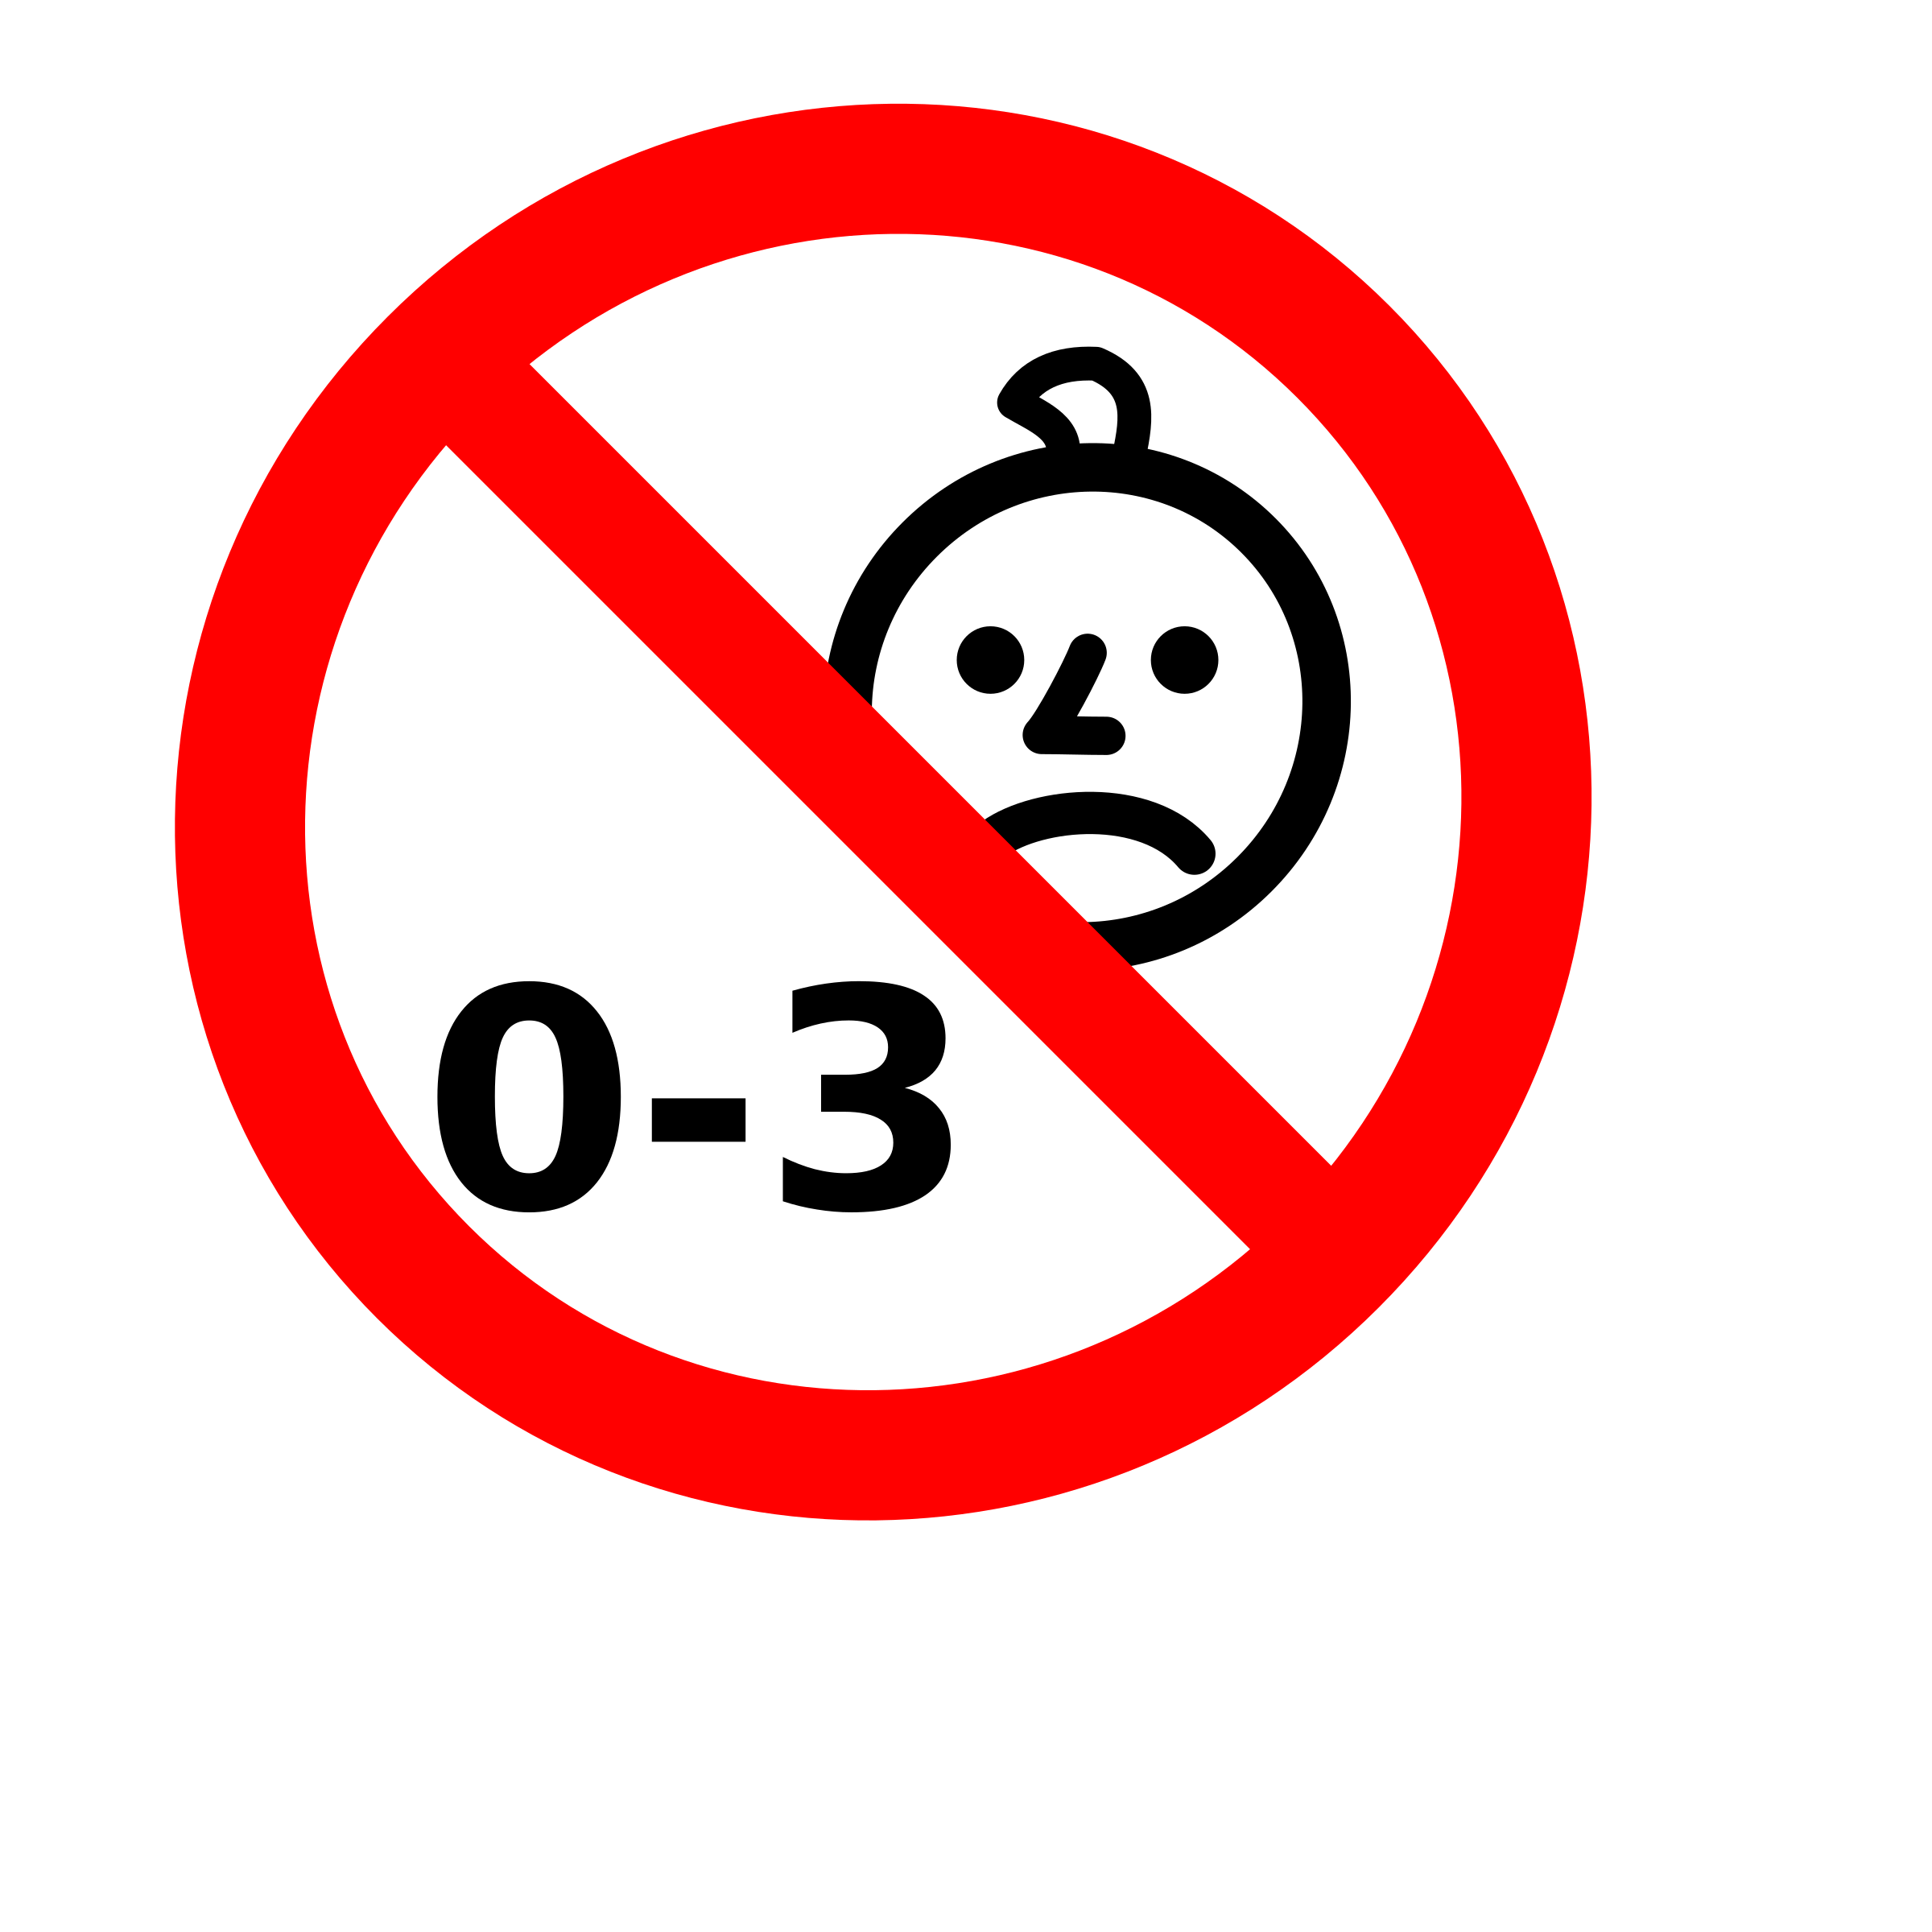 No children png. Clipart not suitable for